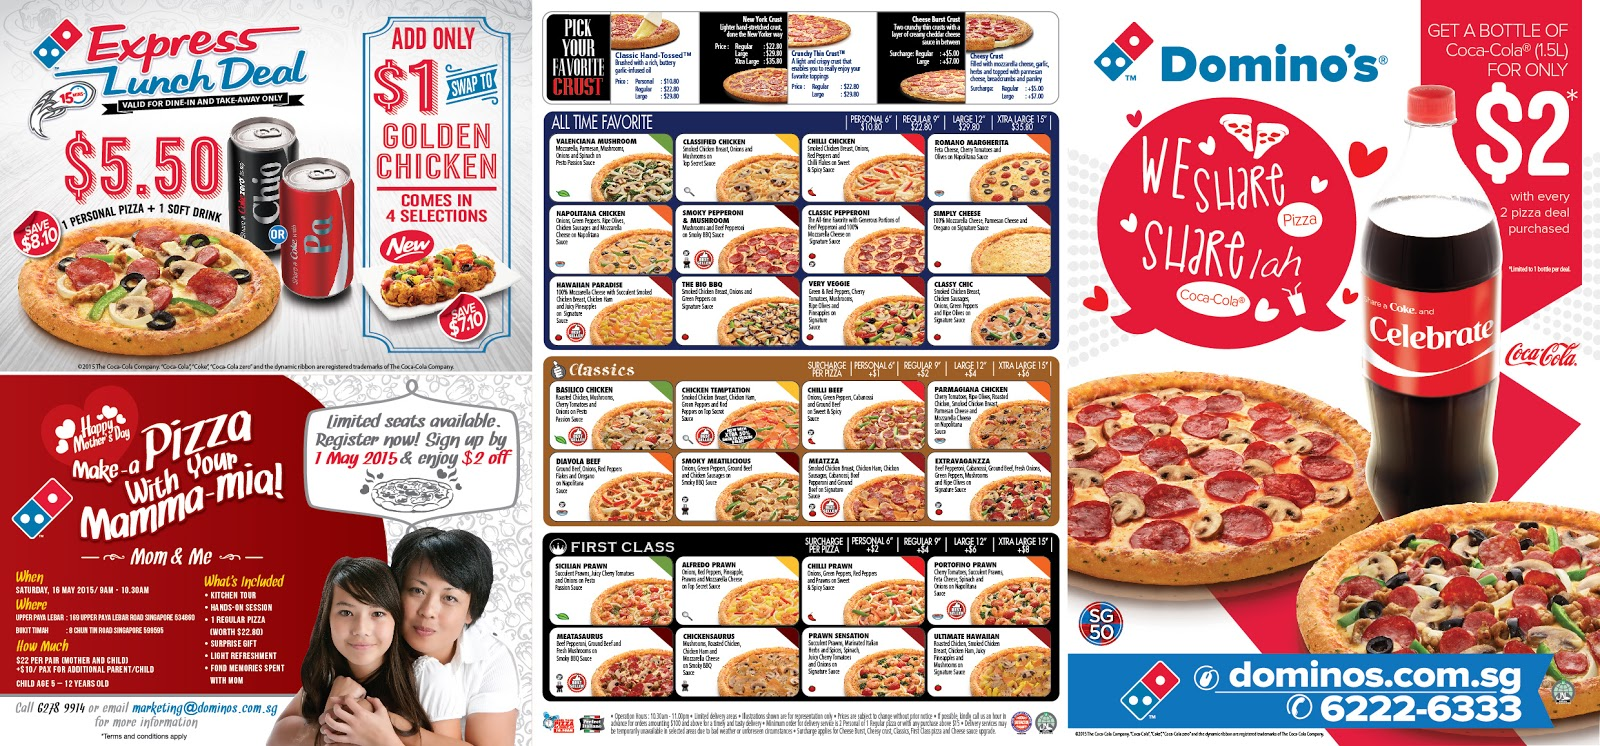 Dominos Coupons, Promo Codes & Discounts | December Enjoy Dominos pizza, subs, wings, & more from the comfort of your home for less with a Domino's coupon code. Get your Dominos discounts today! Use Online. or.5/5(10).